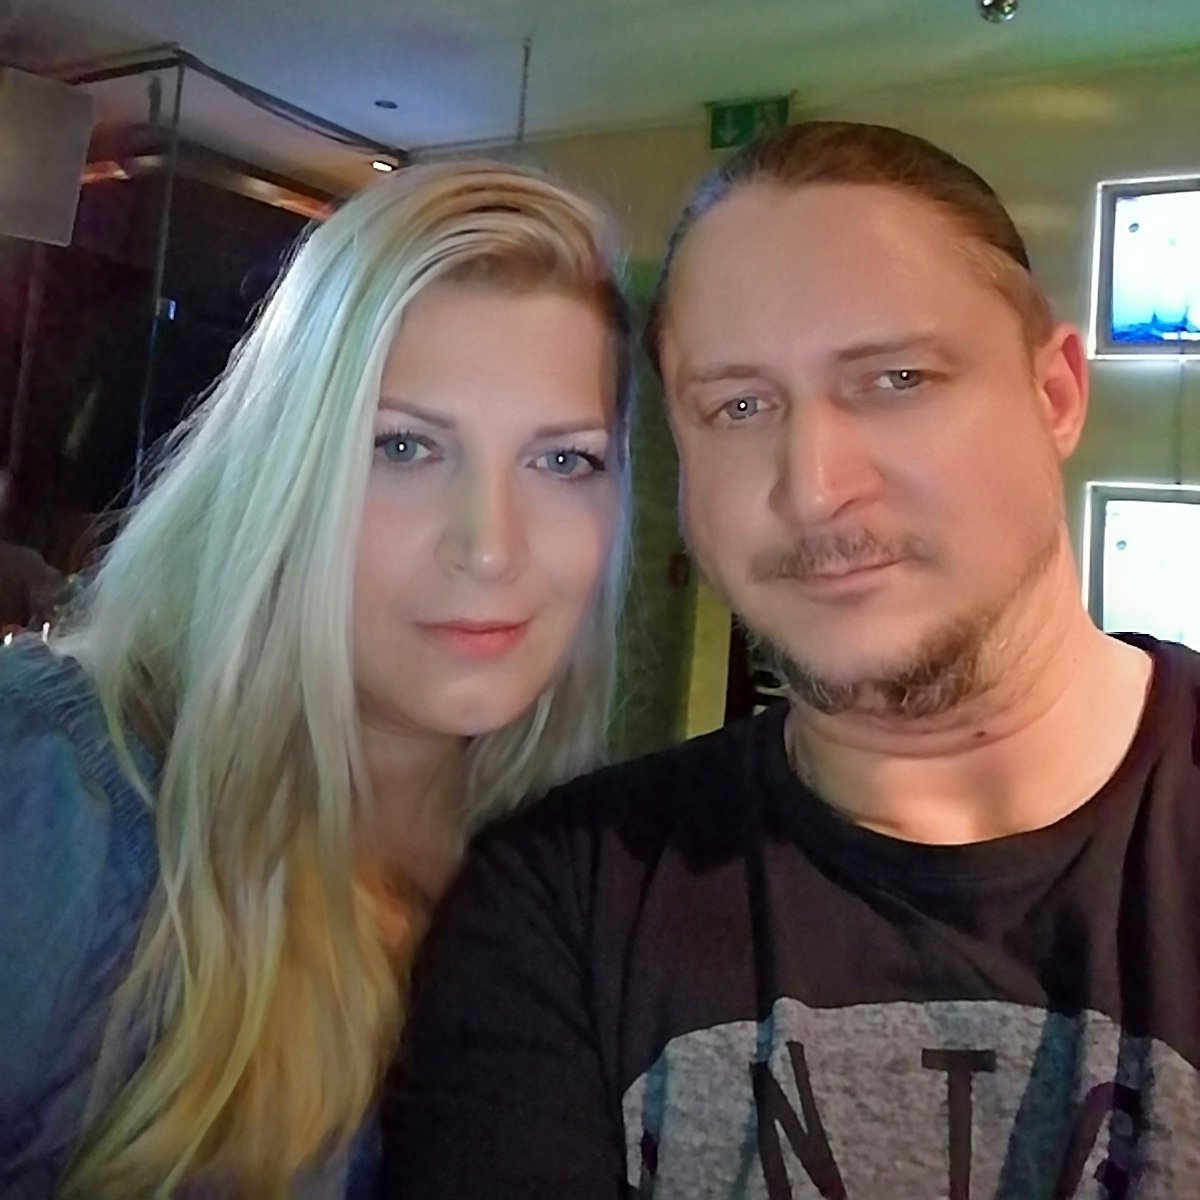 #loveislove The reason why I am a lucky one We passed (survived lol) 7 amazing years..  (In good and in bad times)  #nofilter #BeautifulPeople #PureMagic #truelove since 2011<br>http://pic.twitter.com/RR8zqpiyo0